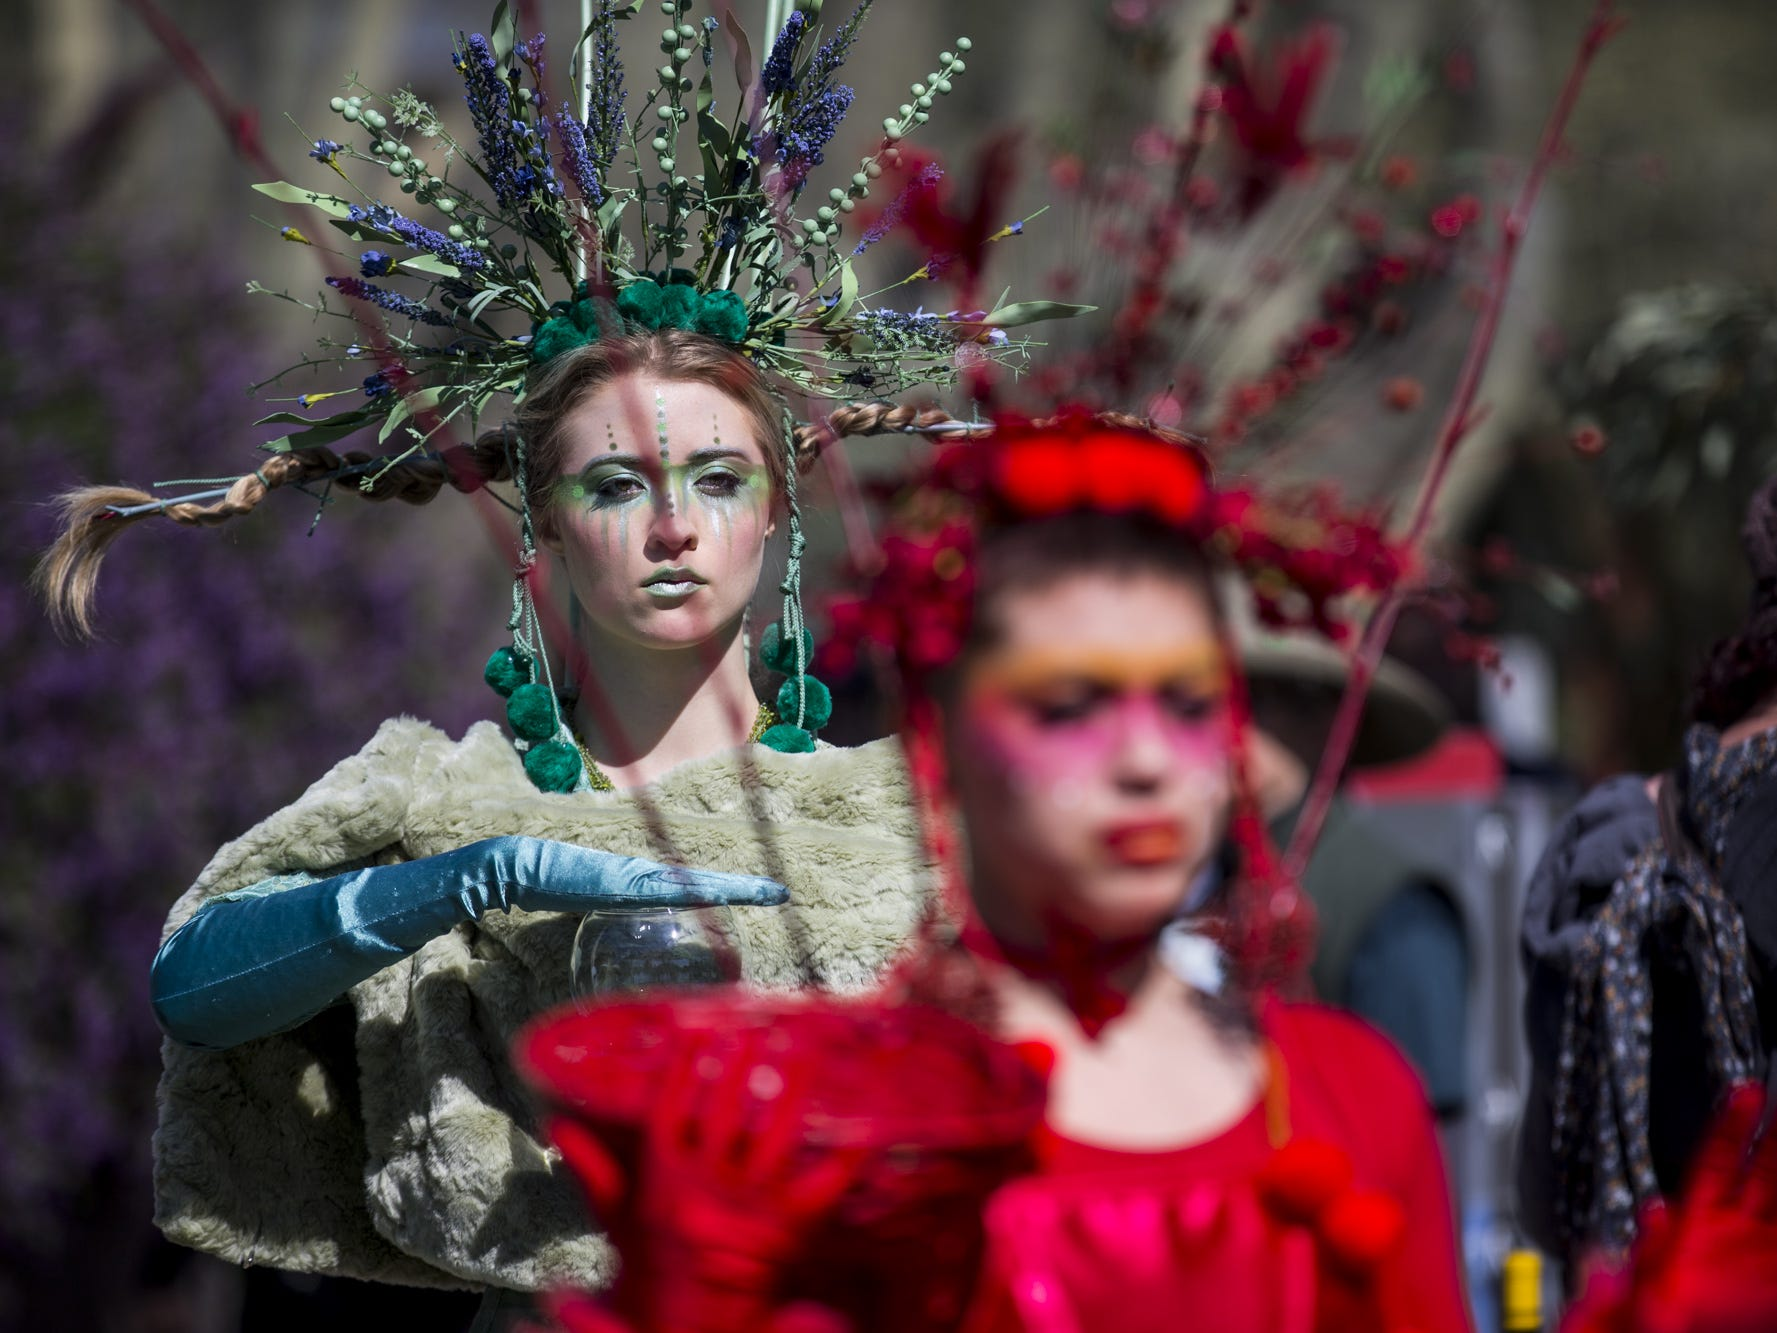 Performance artists walk during Day 1 of the Devour Culinary Classic on Saturday, Feb. 23, 2019, at Desert Botanical Garden in Phoenix.